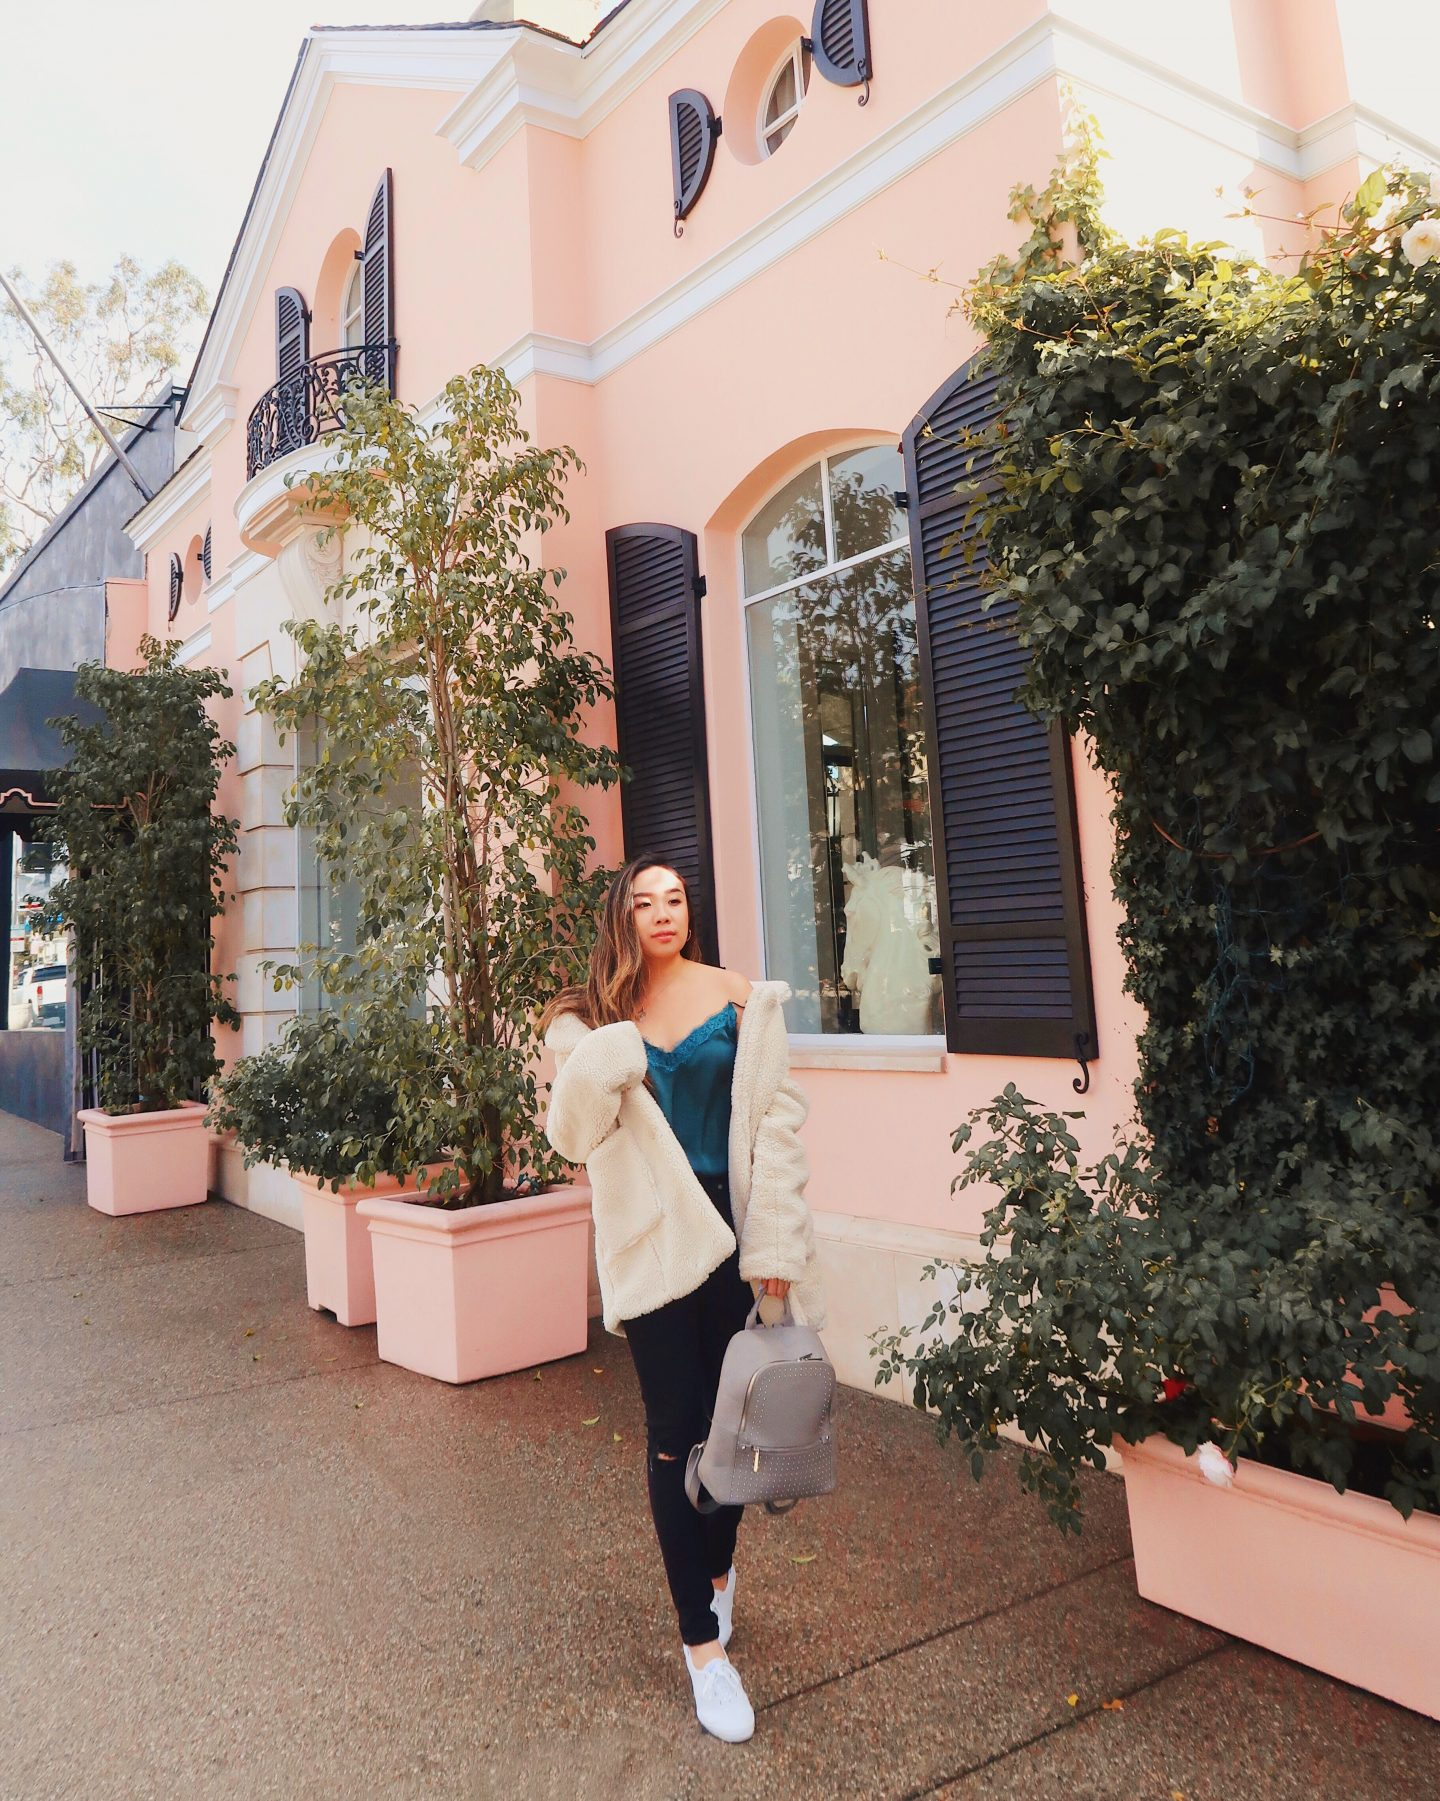 Exploring and shopping on the streets of Melrose in Los Angeles